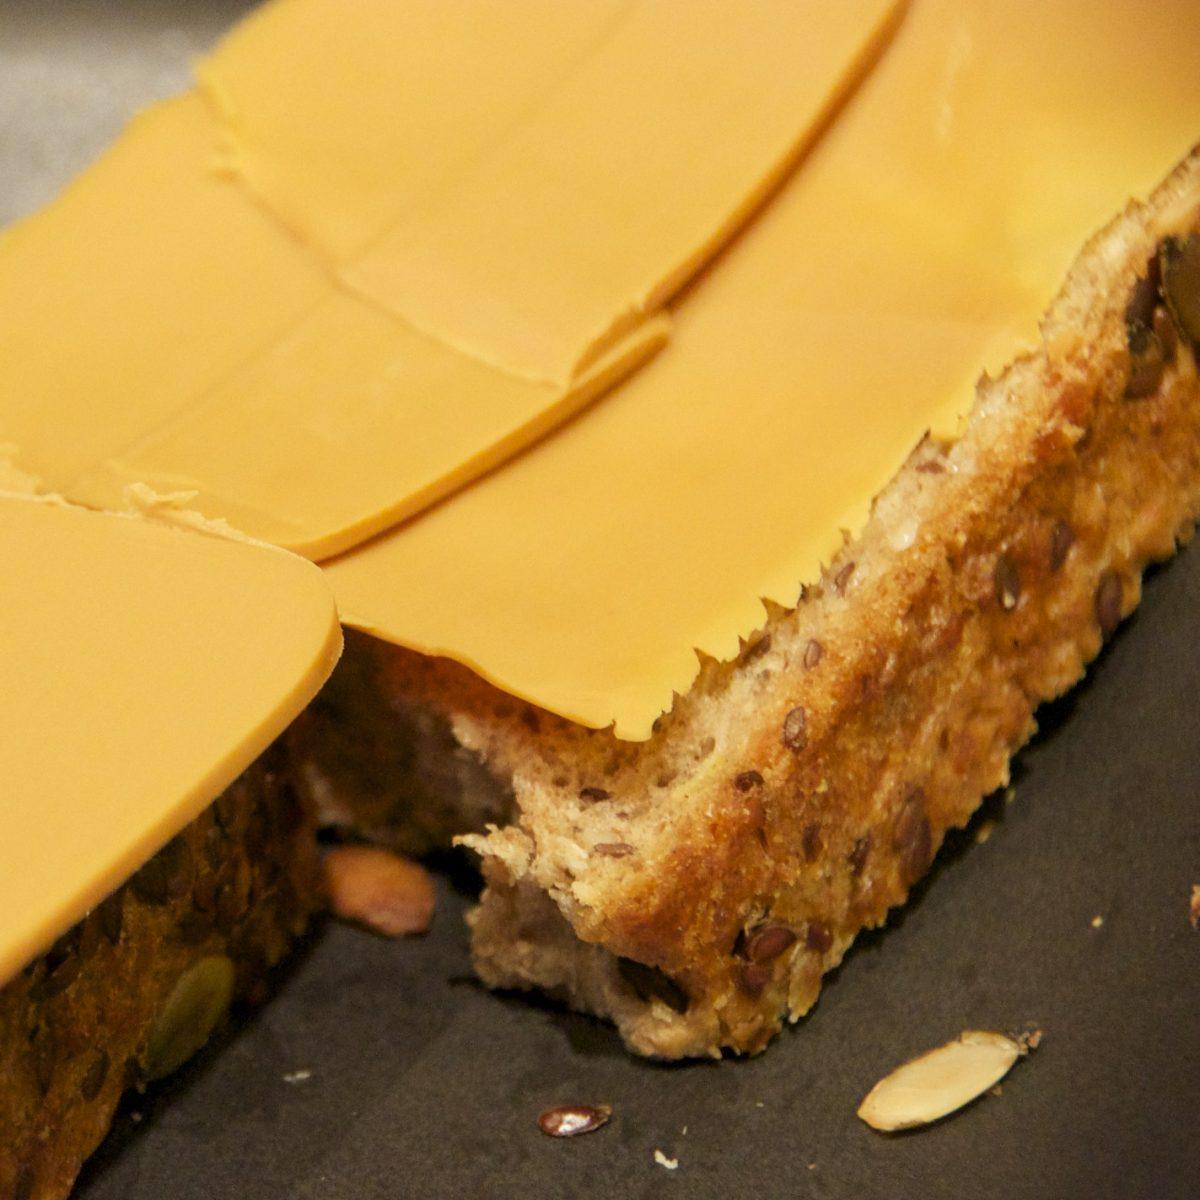 Brunost brown cheese